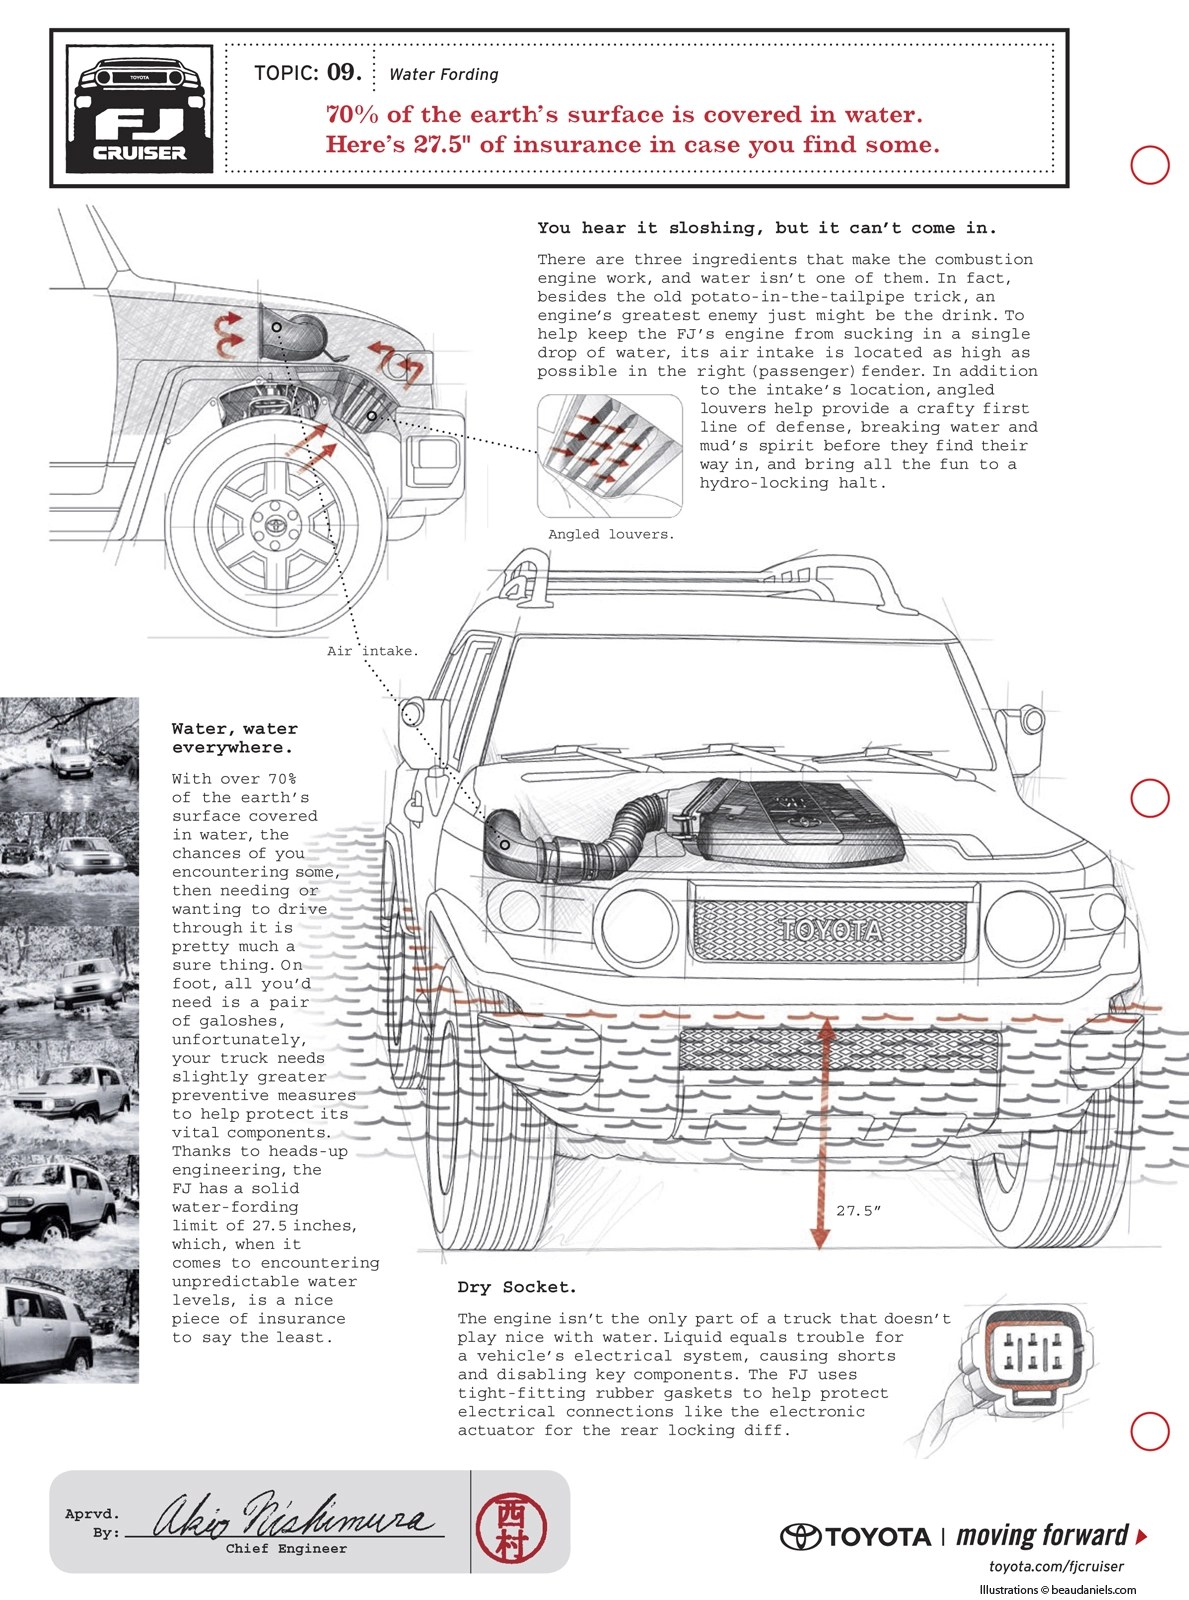 hight resolution of fj cruiser diagram ads toyota fj cruiser forumclick image for larger version name ghosted technical illustration